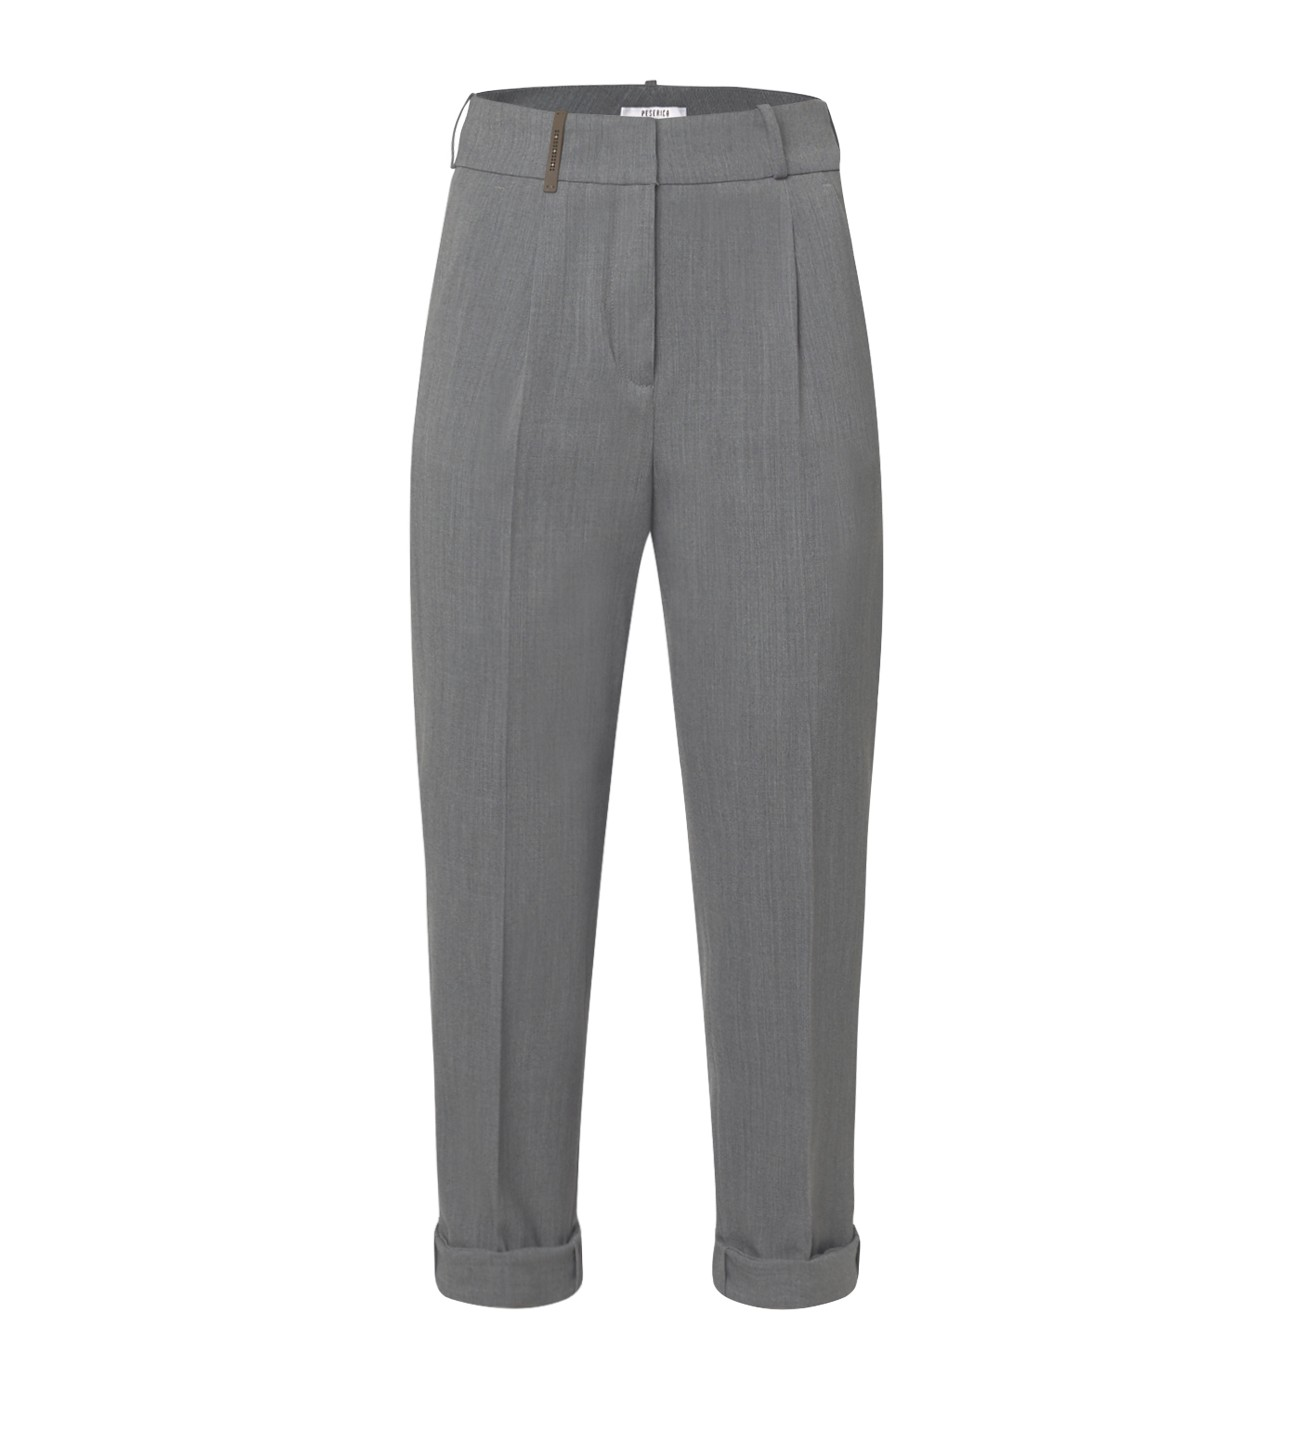 PESERICO_TROUSERS_WITH_PLEAT_AND_TURNED_UP_CUFFS_MARIONA_FASHION_CLOTHING_WOMAN_SHOP_ONLINE_P04596